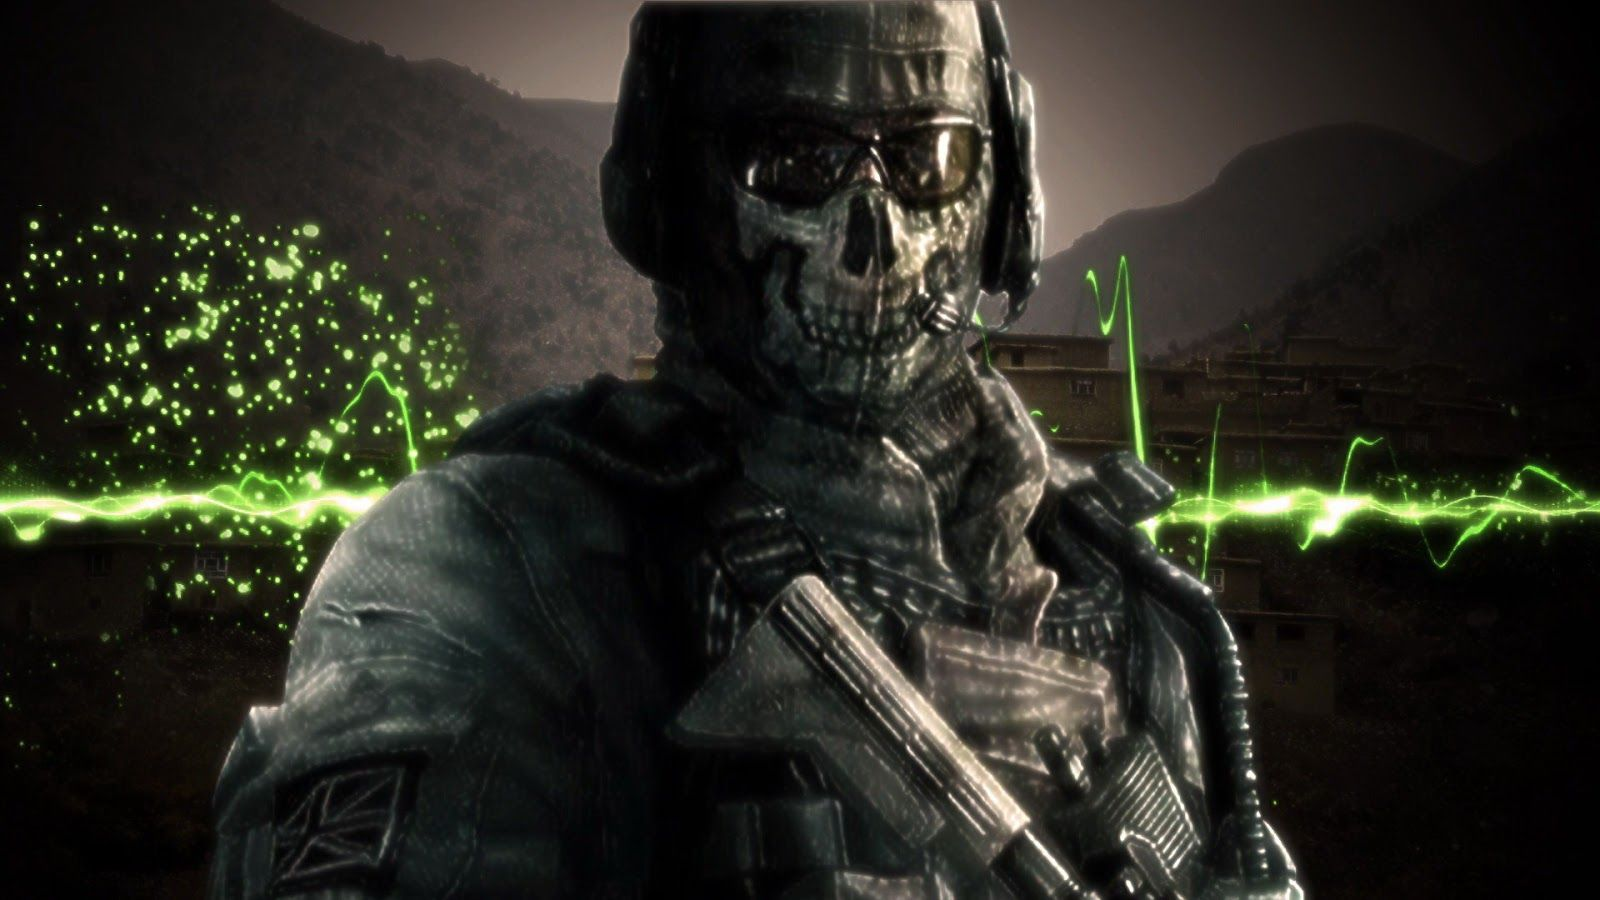 Call of Duty Ghosts Wallpaper | Addicted to Game | Pinterest ...